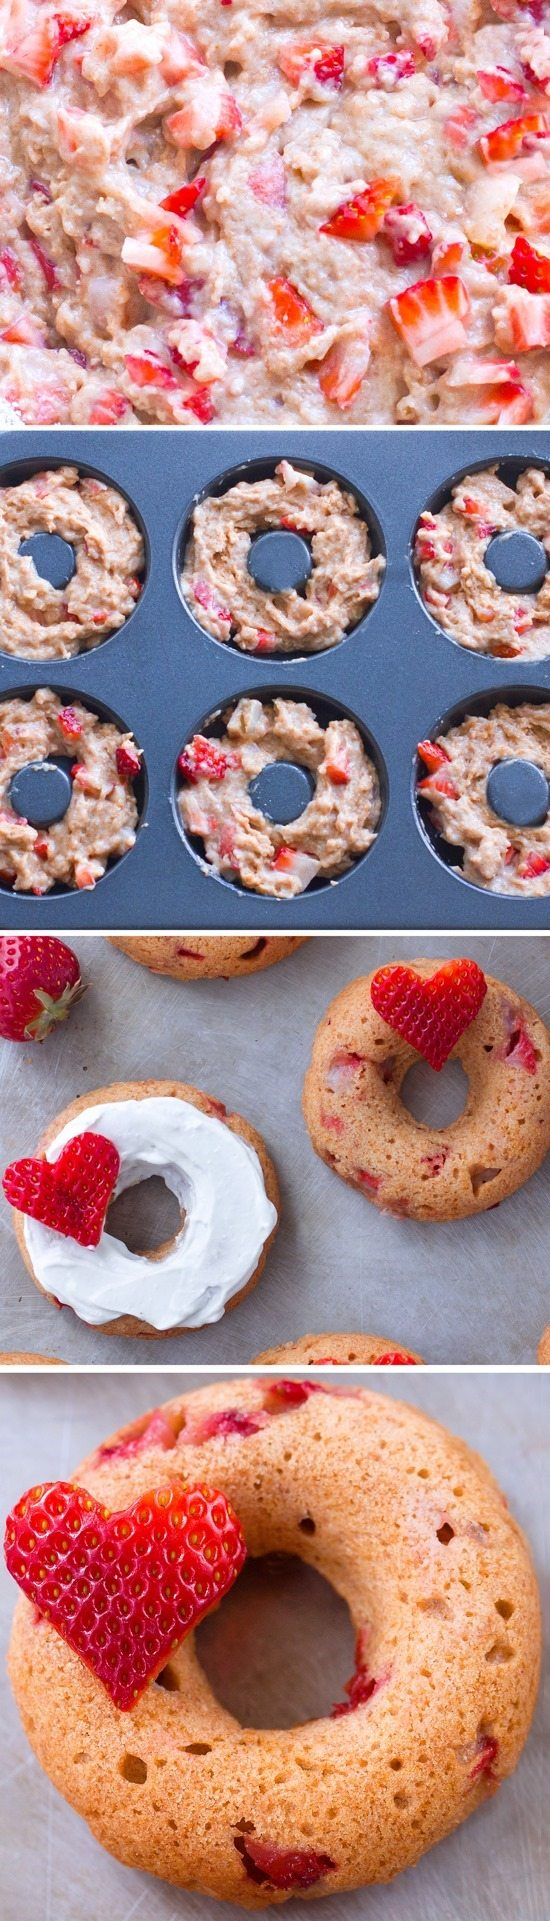 Sweet, delicious, healthy baked strawberry donuts